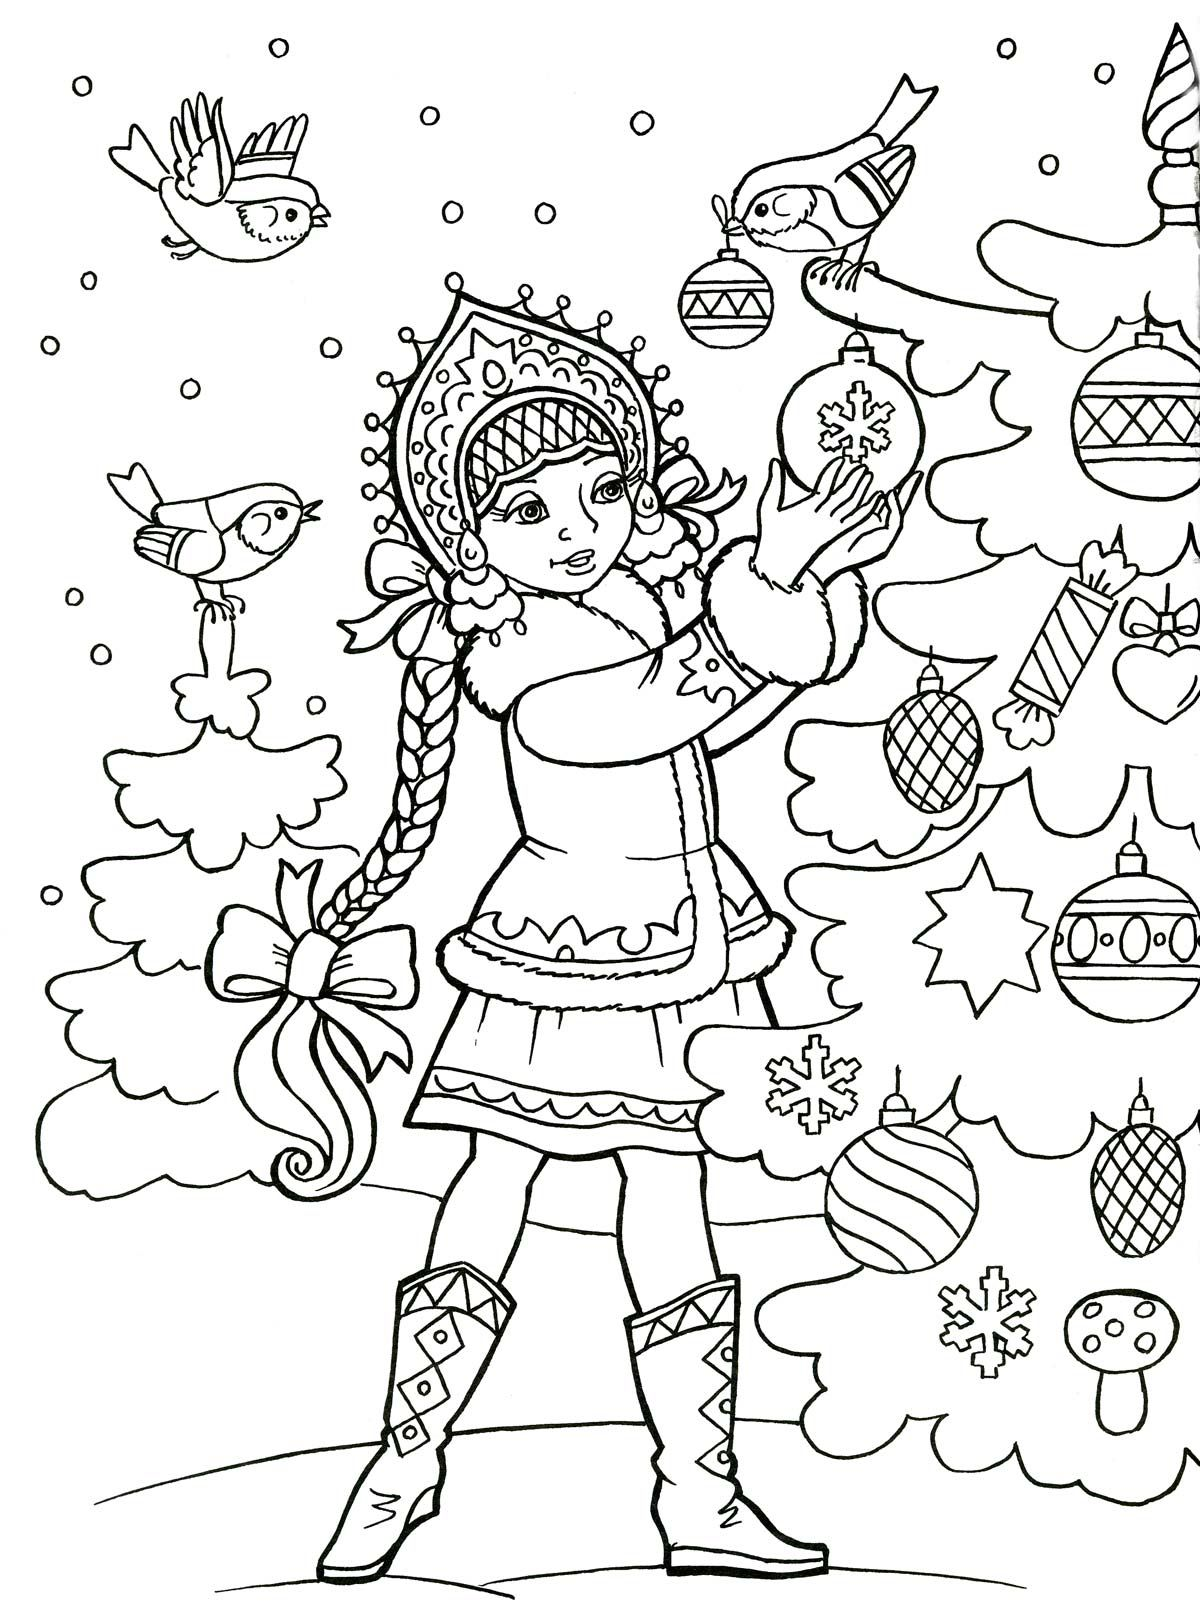 Snow Maiden | Christmas coloring pages, Barbie coloring